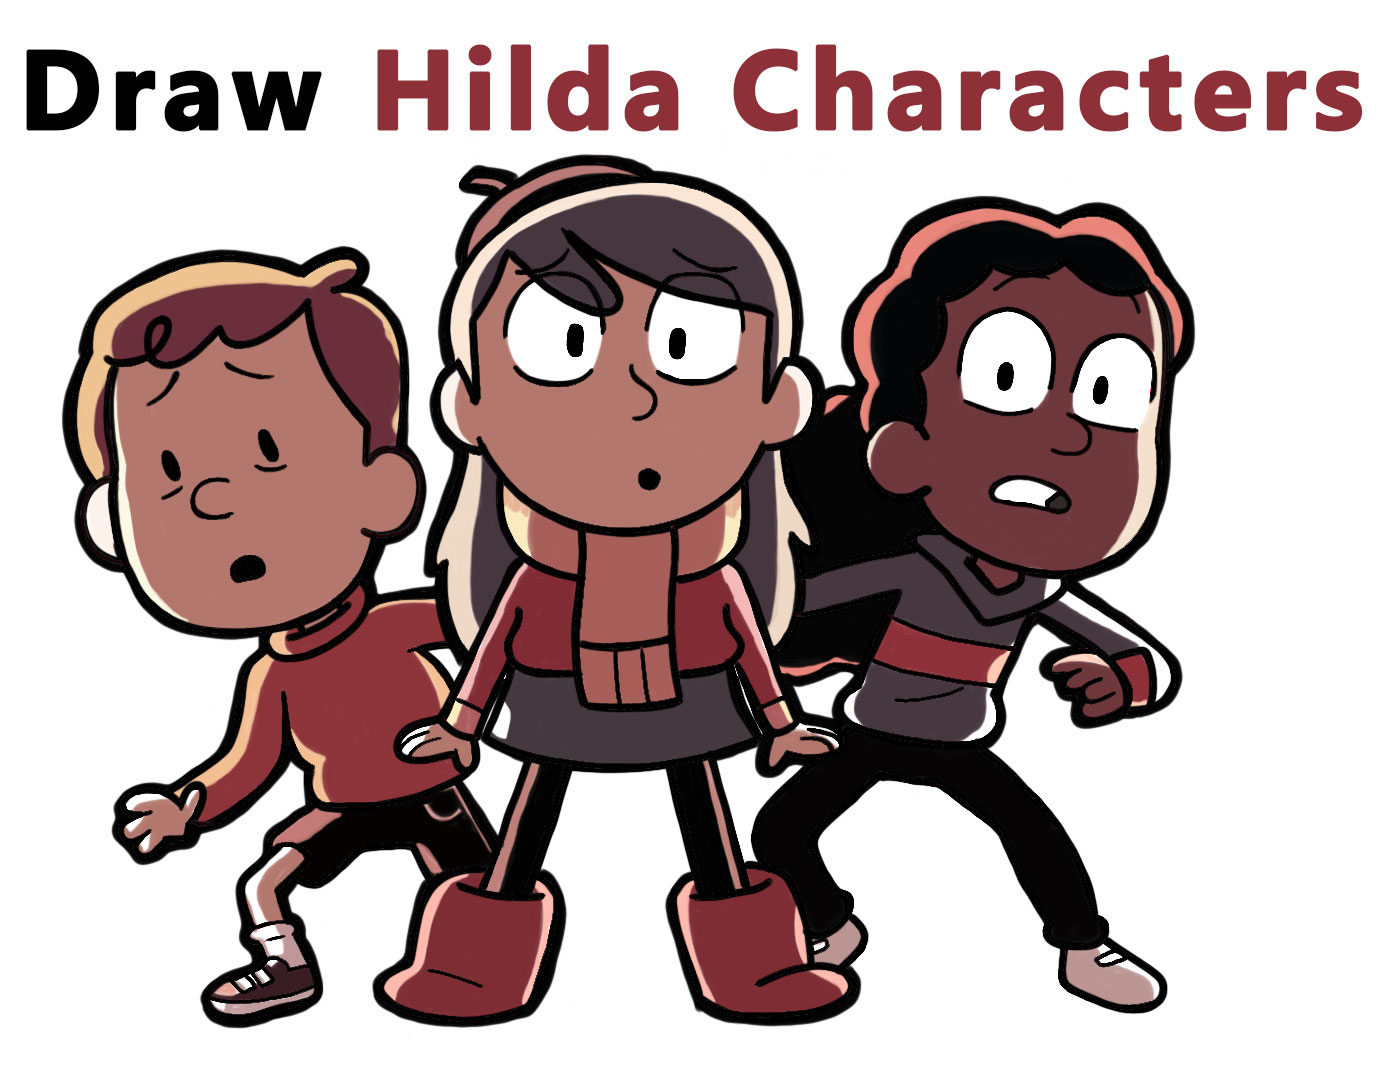 Learn How to Draw Hilda Characters (Hilda, David, and Frida) Easy Step by Step Drawing Tutorial for Kids